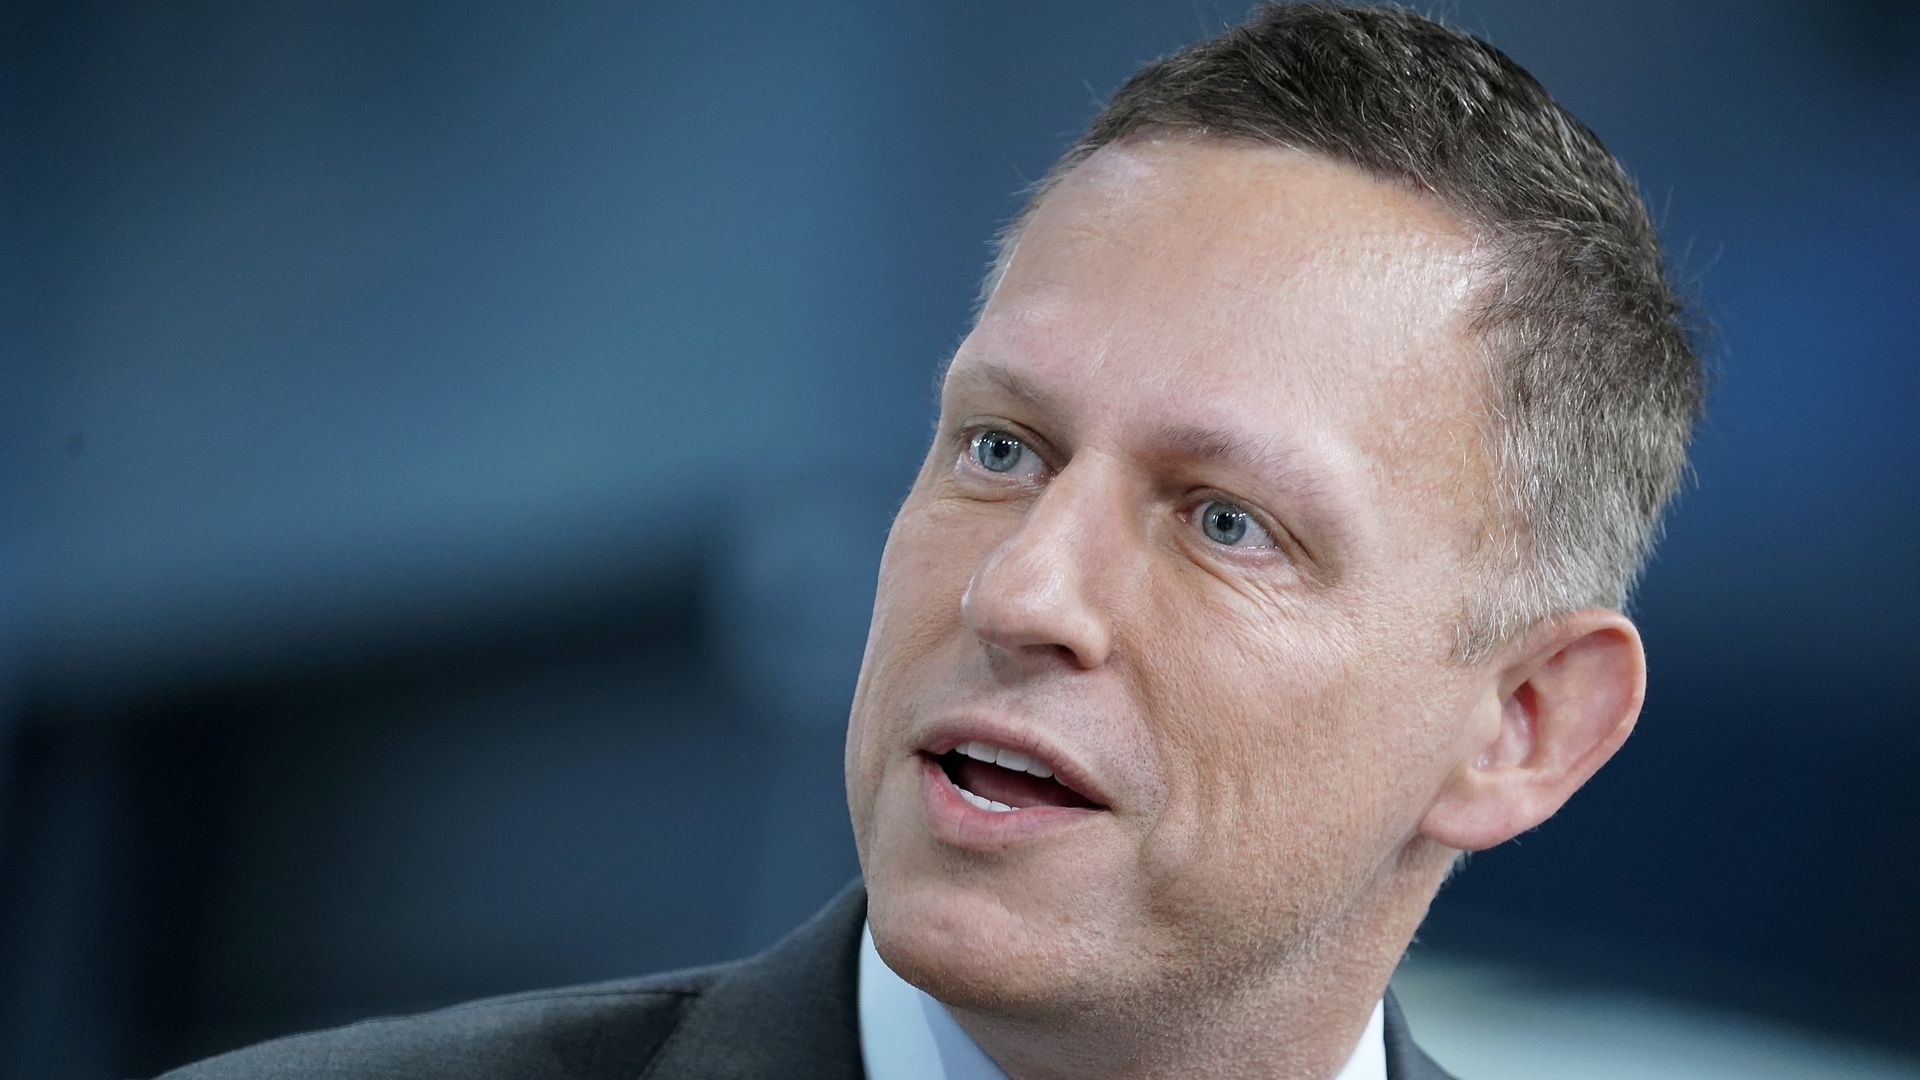 In this image, Peter Thiel wears a tie and suit and talks